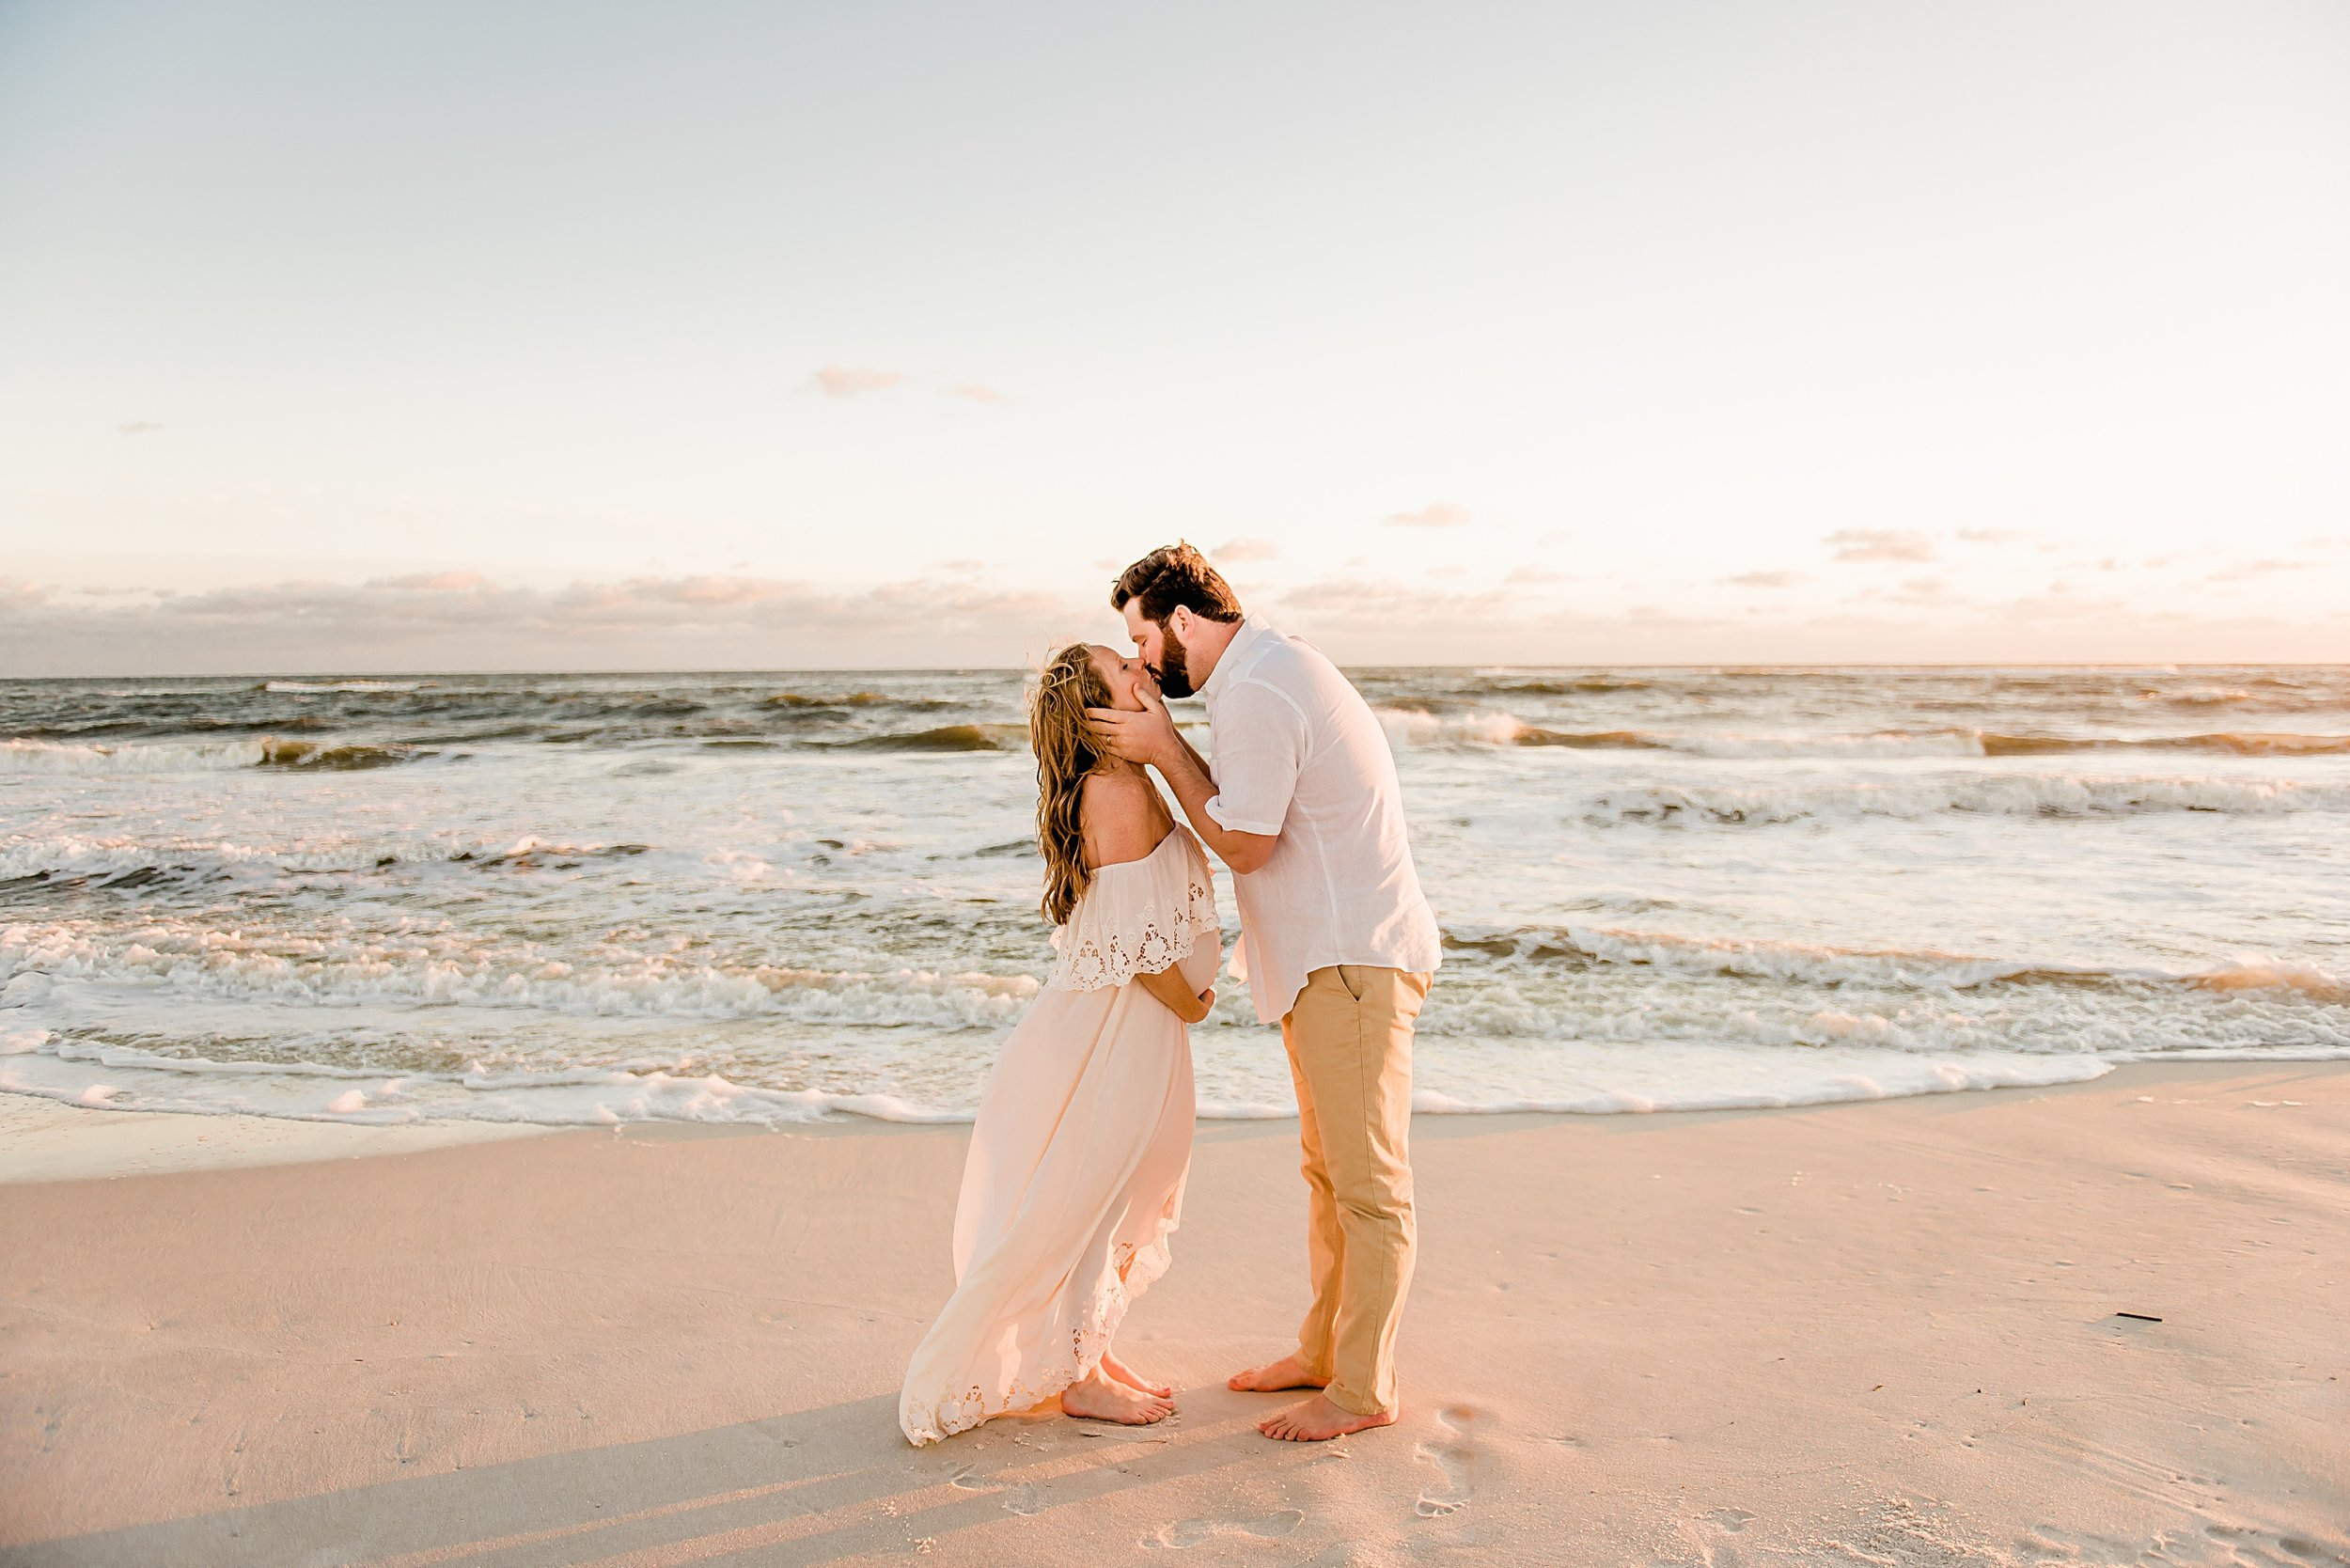 bestpensacolaweddingphotographer_1991.jpg